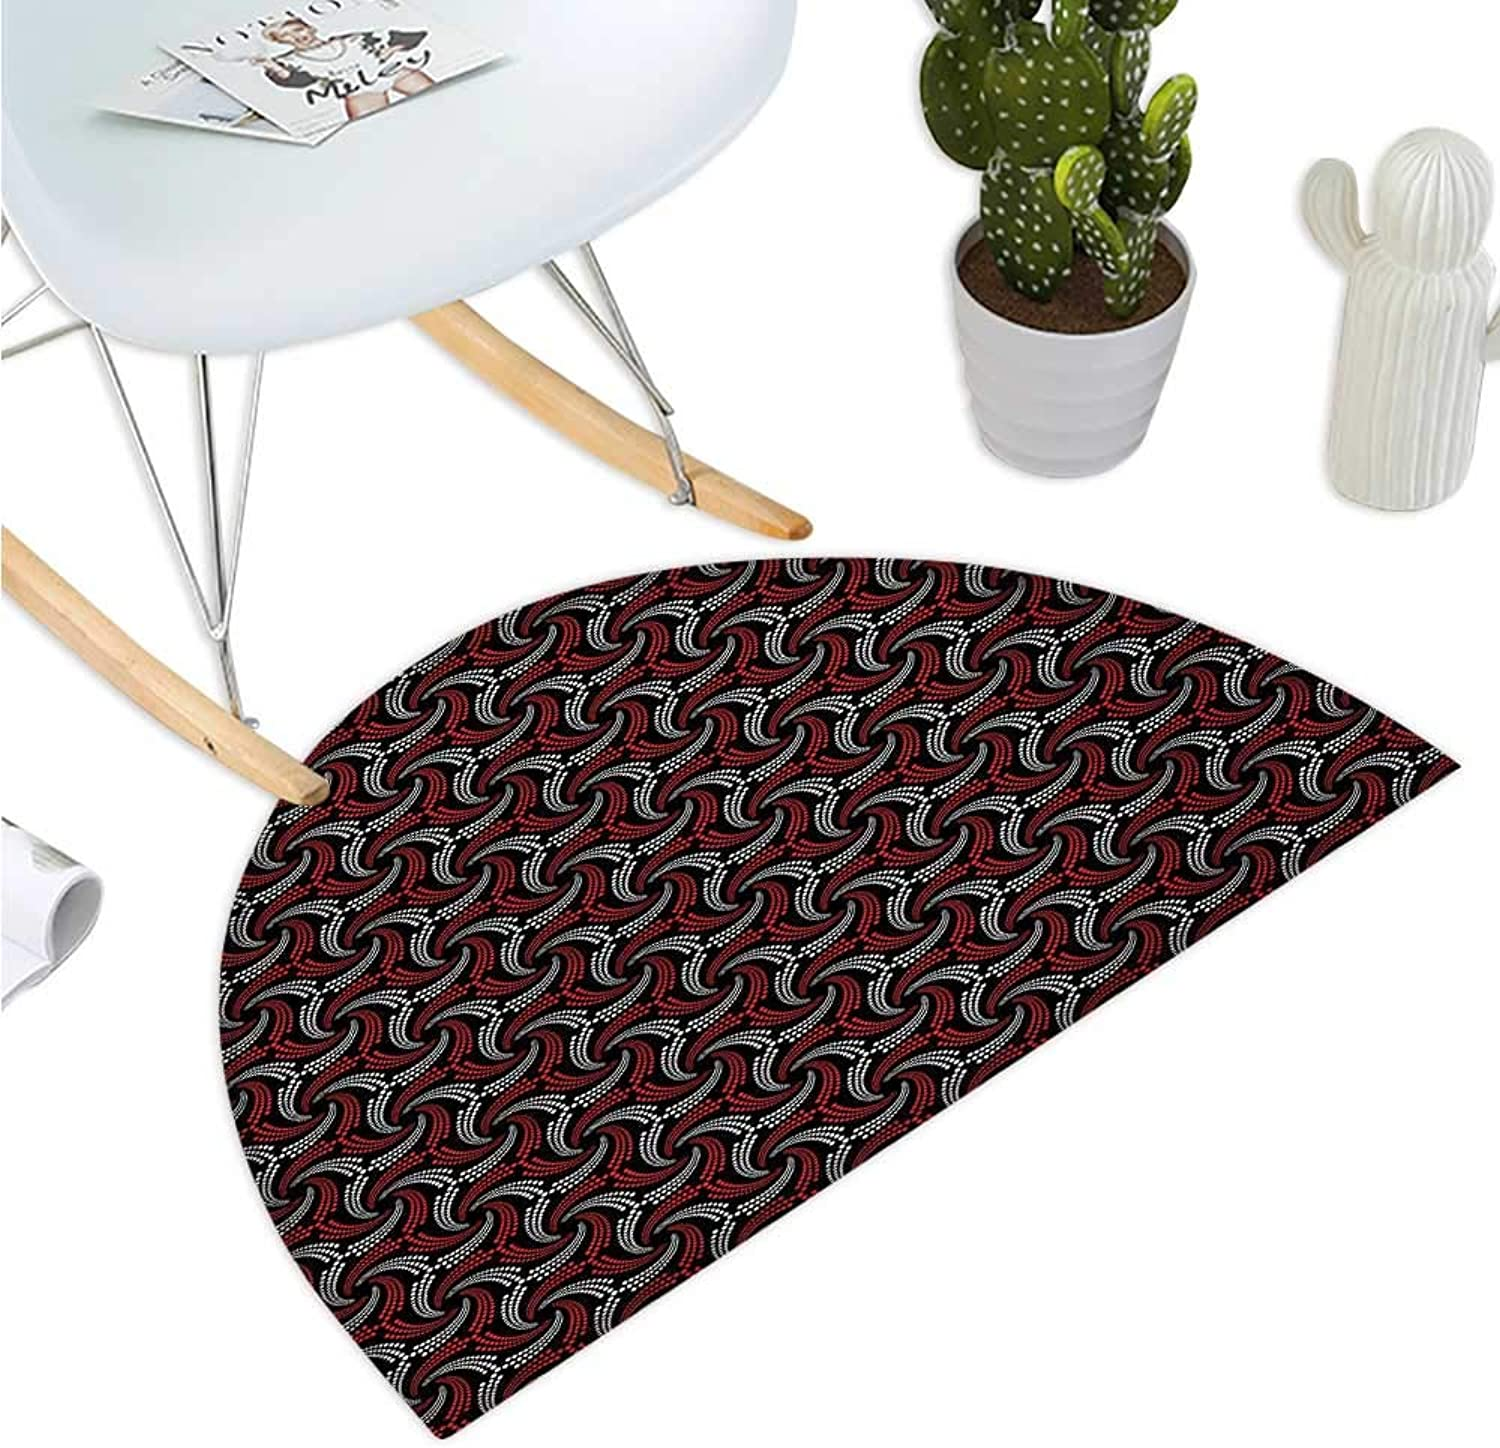 Red and Black Semicircular Cushion Abstract Pattern Minimalistic Modern Design with Curvy Dotted Lines Entry Door Mat H 39.3  xD 59  Scarlet Black White